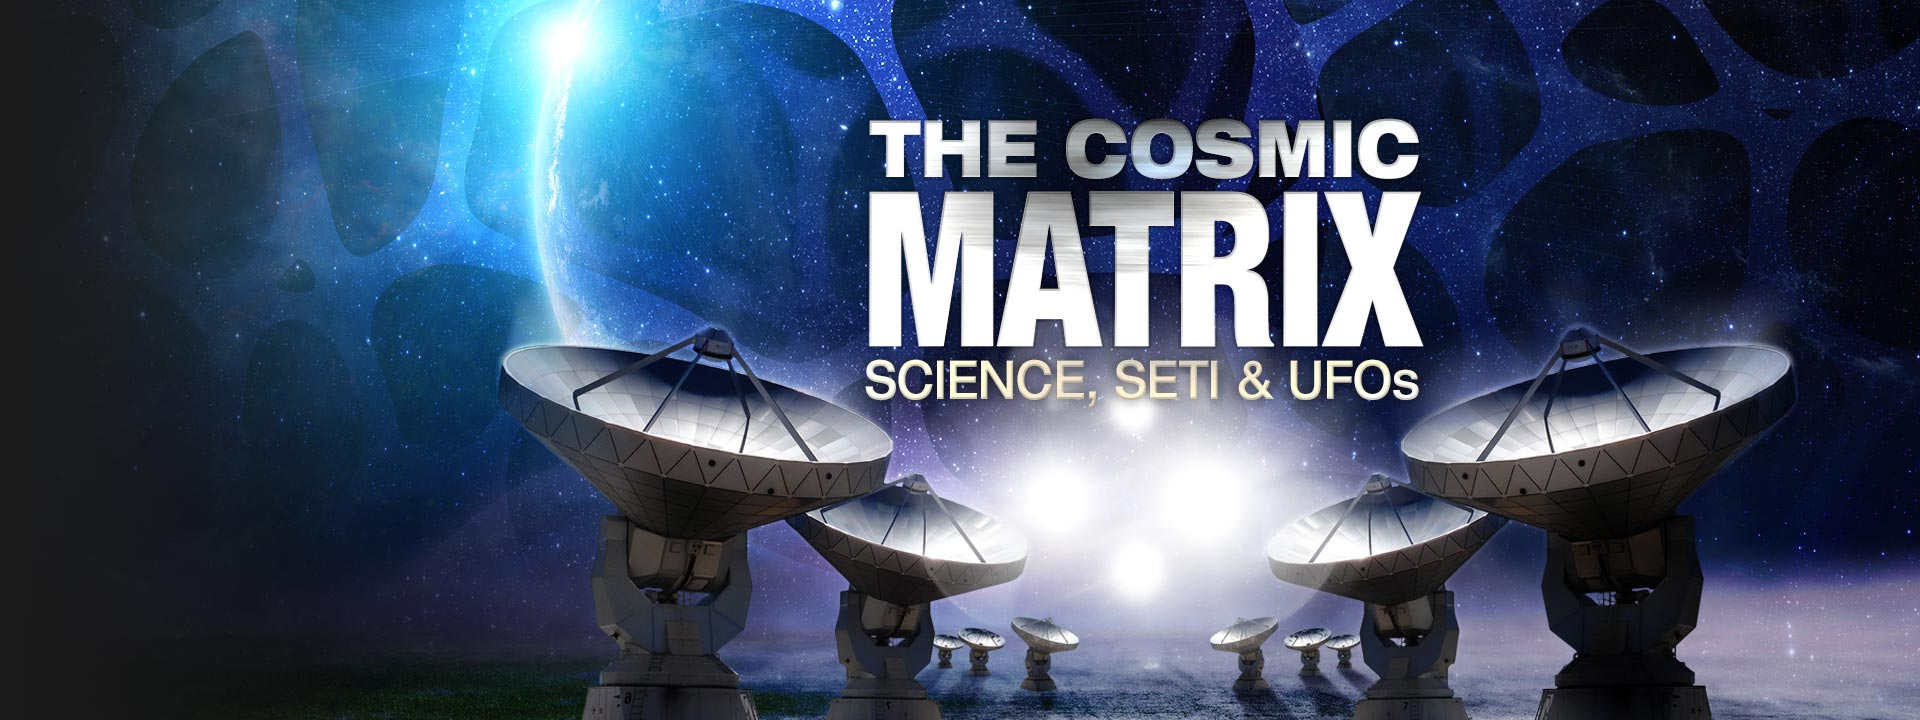 The Cosmic Matrix